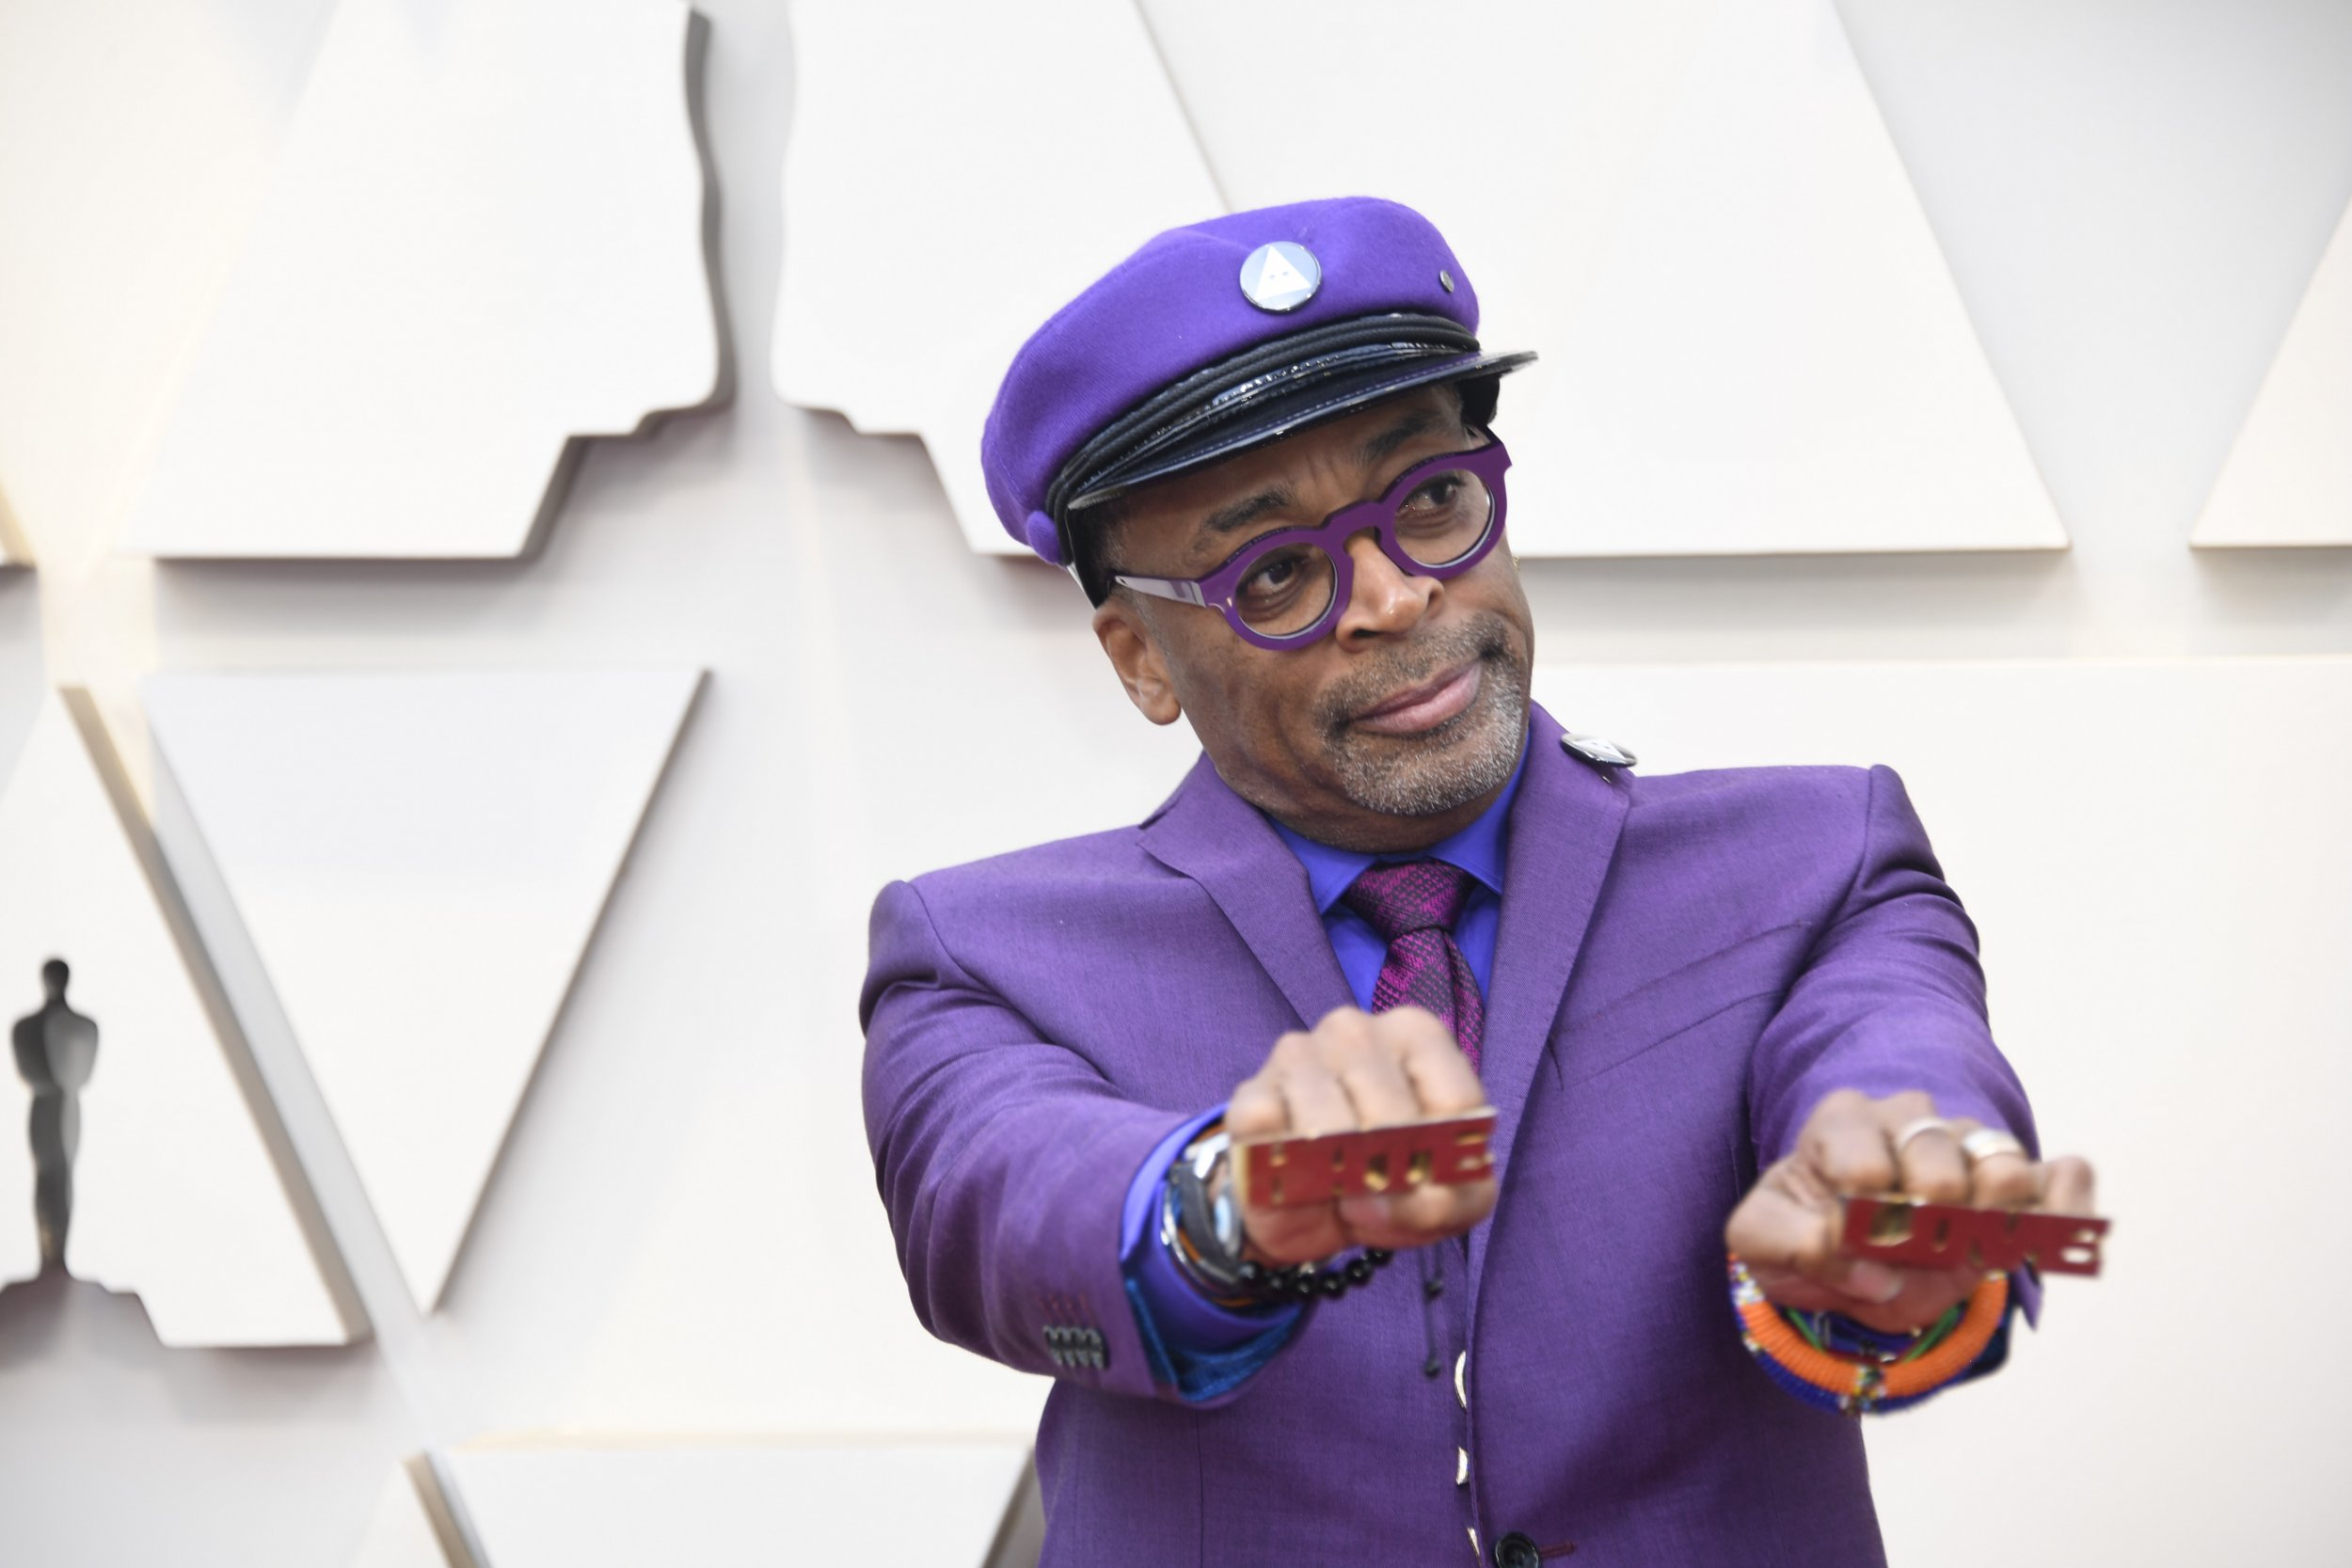 Spike Lee predicted outrage over Green Book winning best picture at Oscars: 'Black Twitter's going to be on fire'